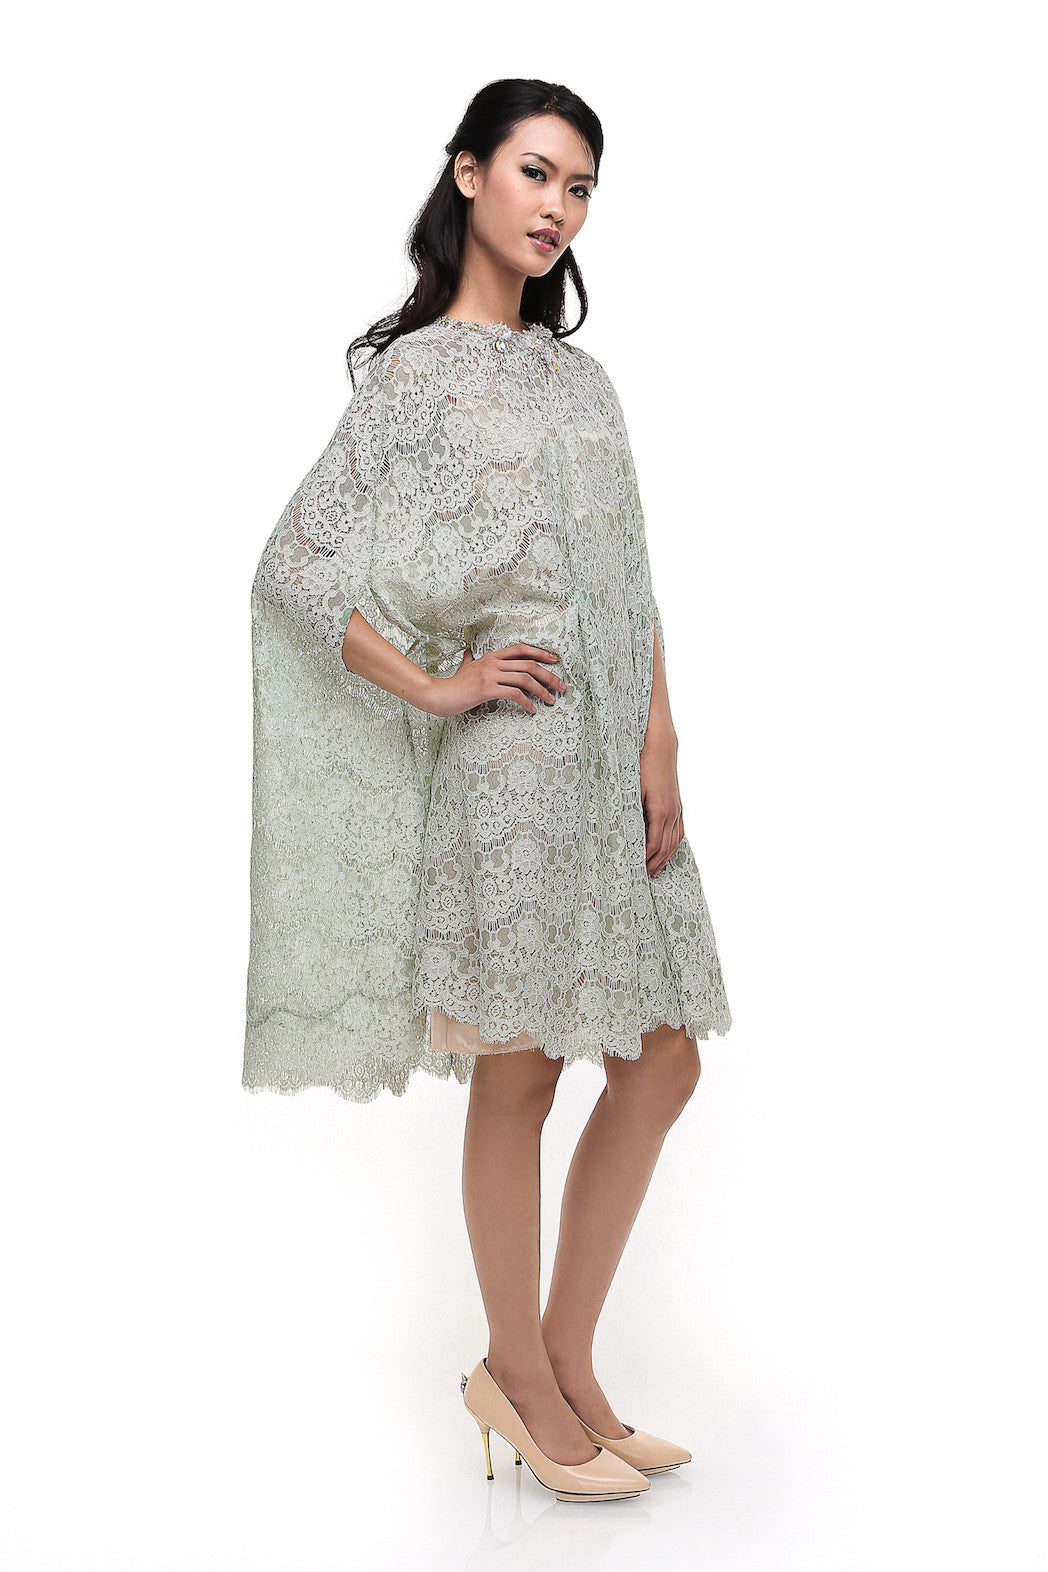 Studio 133 by Biyan - Buy: Biyan Pastel Green Lace Cape kaftan-The Dresscodes - 1